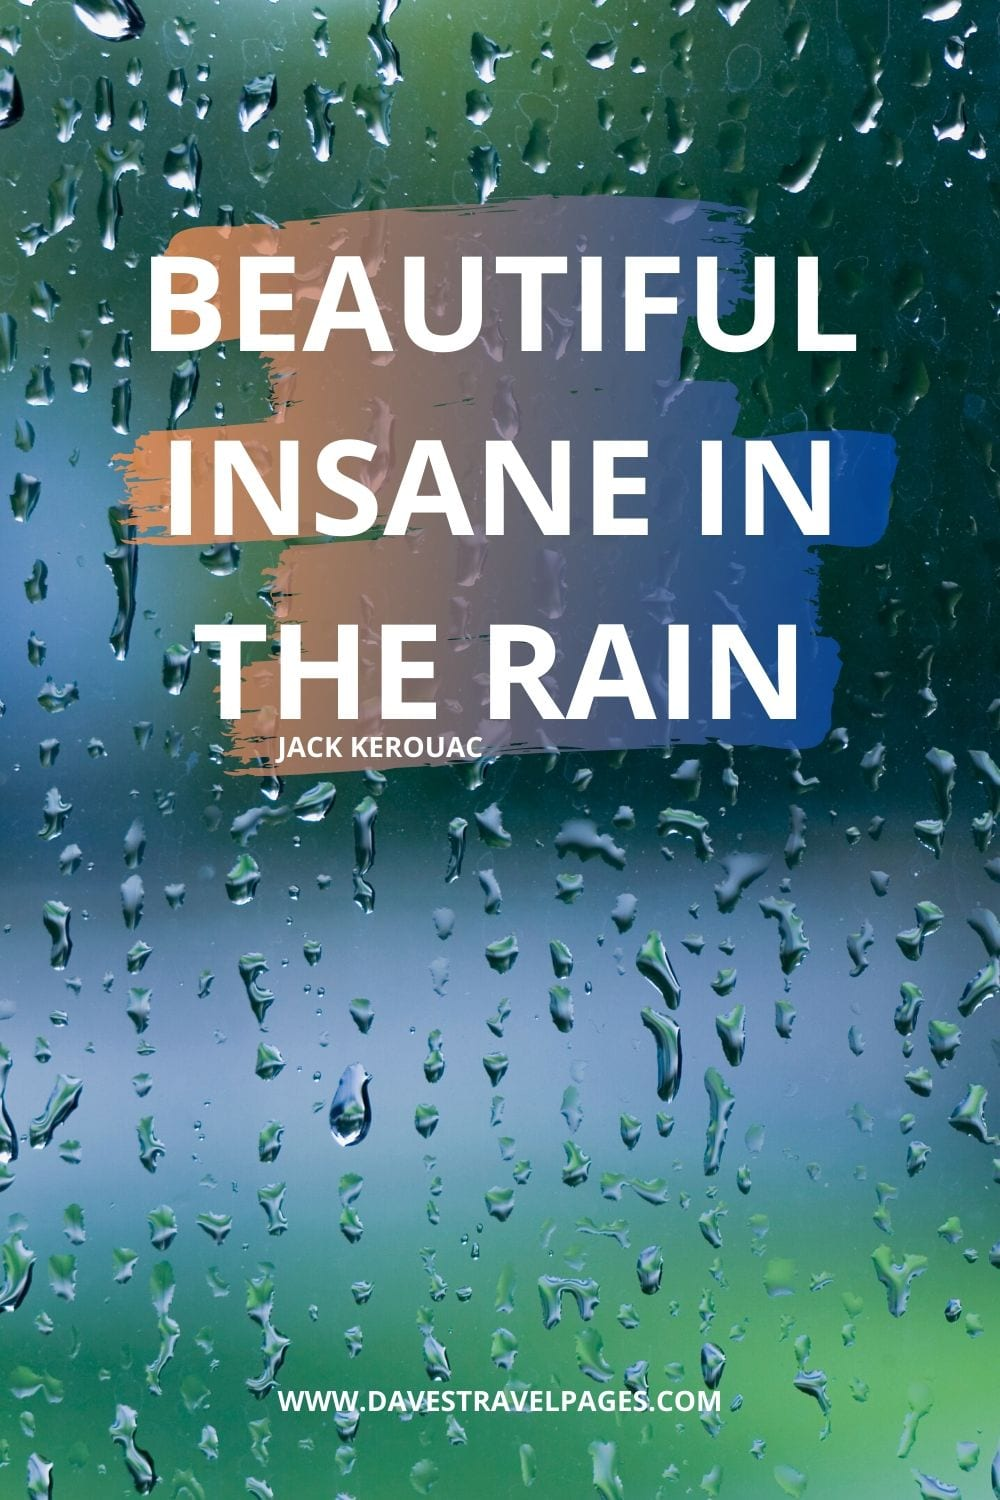 """Beautiful insane in the rain"" - Quote by Jack Kerouac from The Subterraneans"